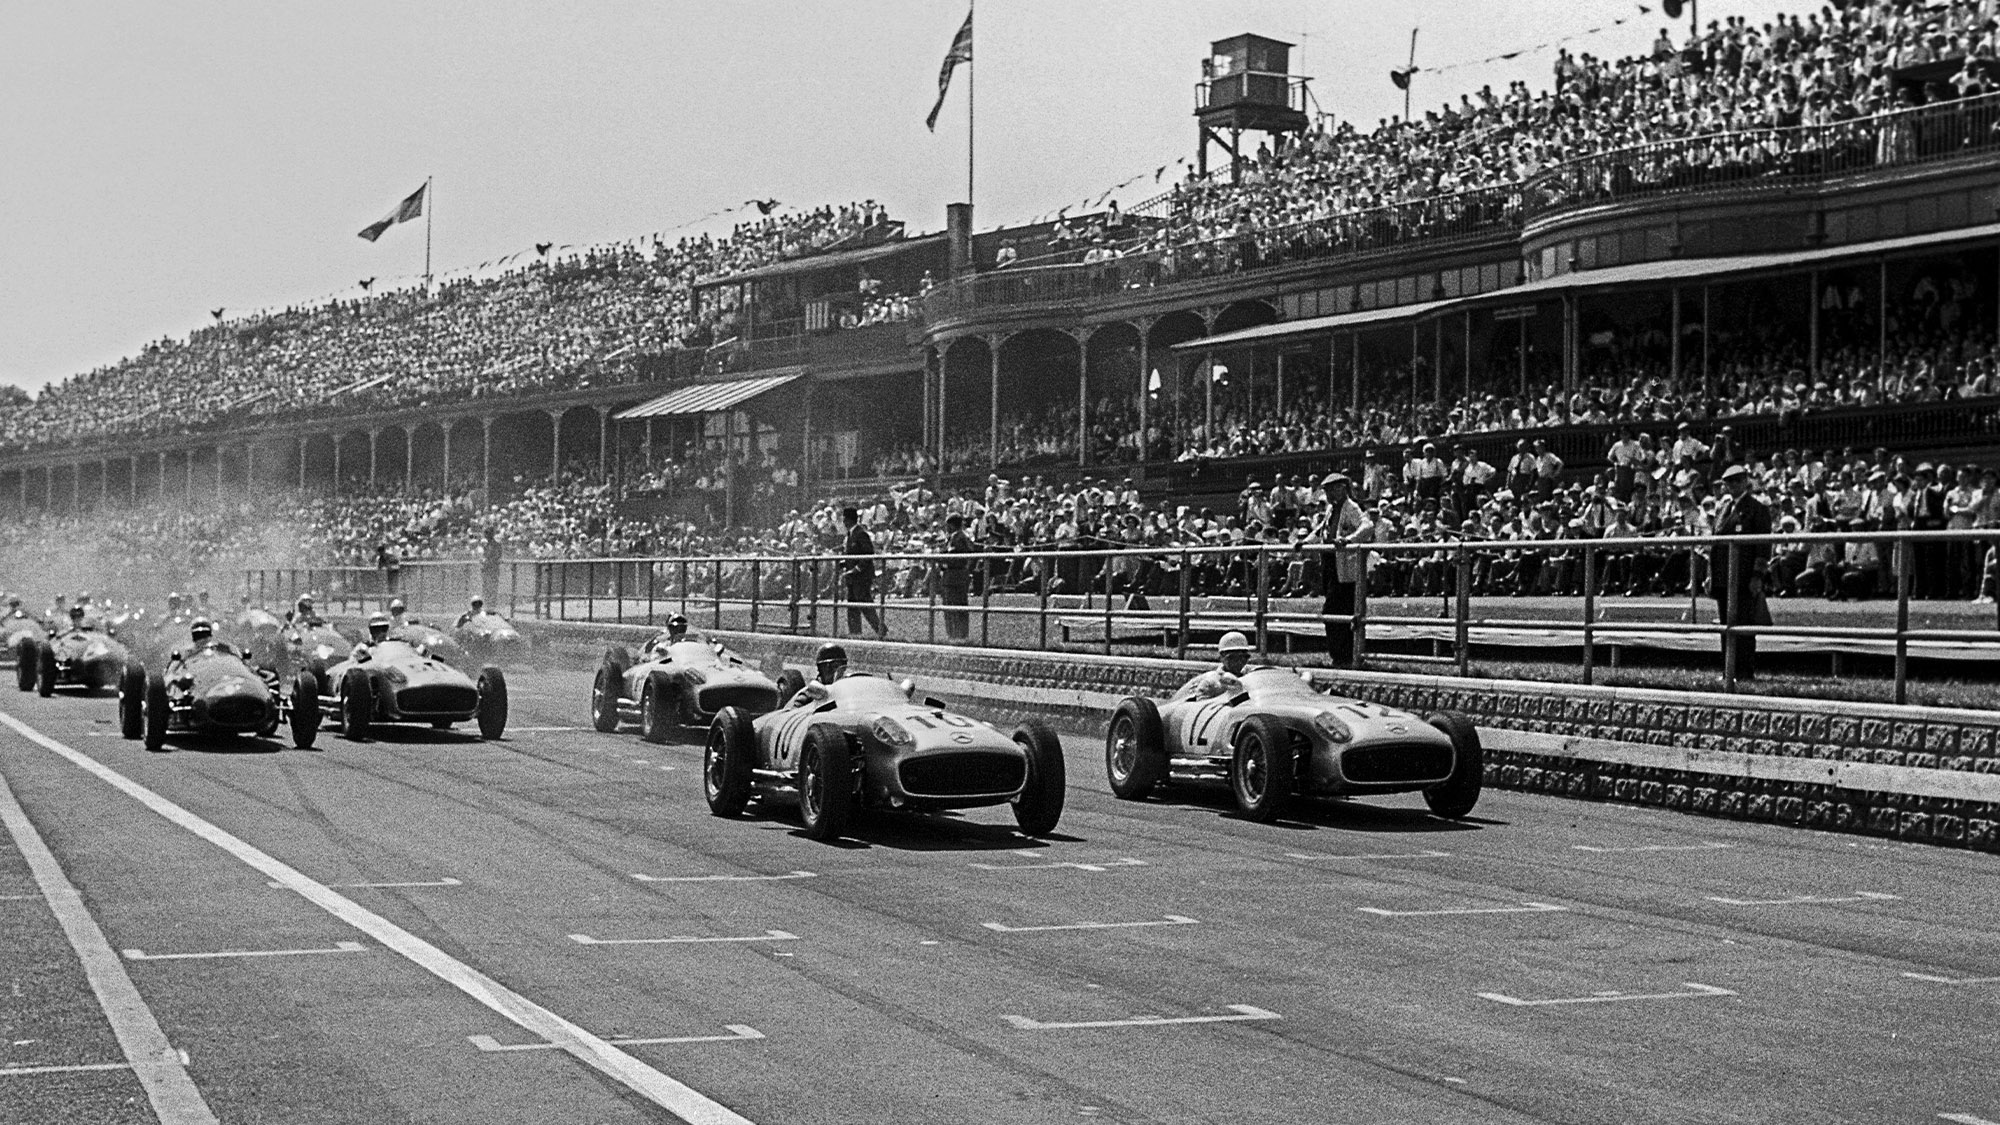 Juan Manuel Fangio and Stirling Moss lead at the start of the 1955 British Grand Prix at Aintree